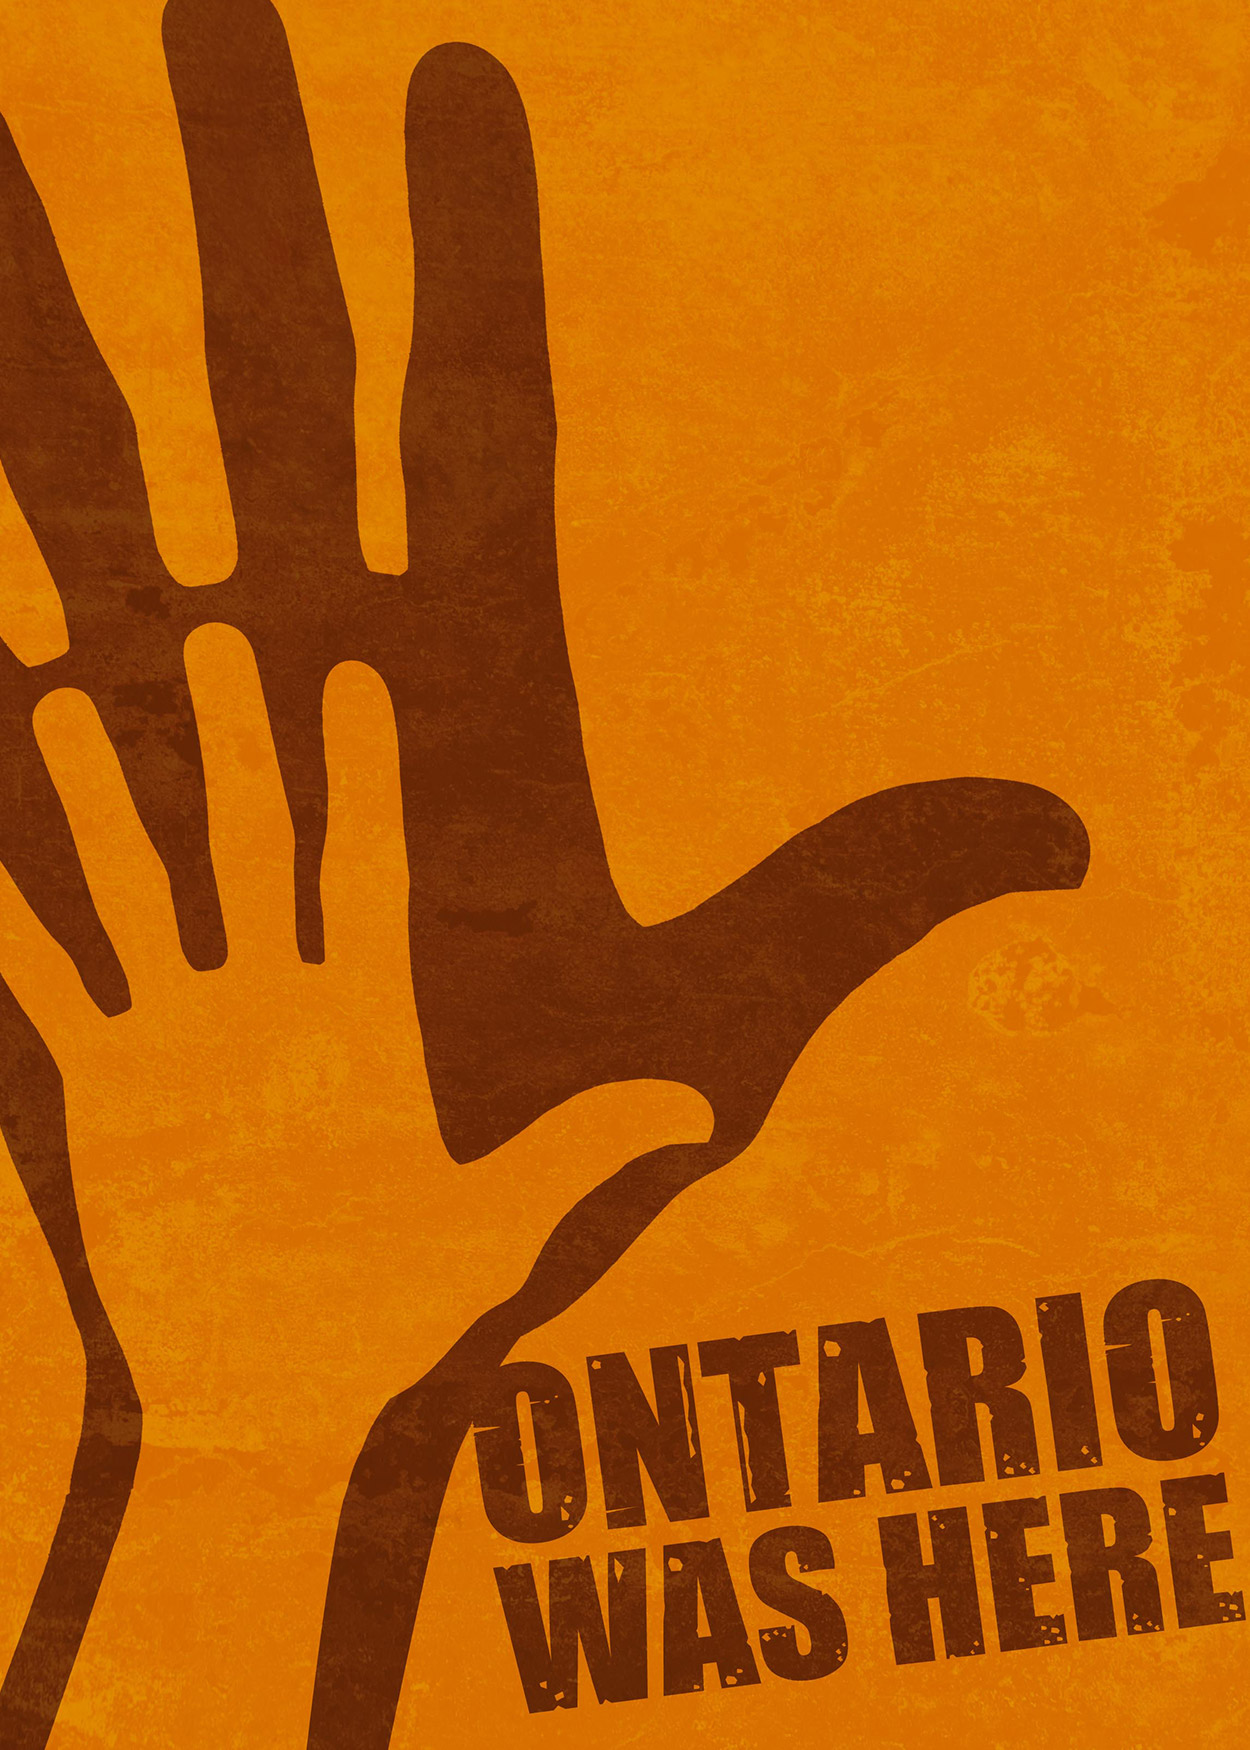 Key Art from Ontario Was Here (2013). A drawn hand at the forefront of the image creates a shadow on an orange wall.